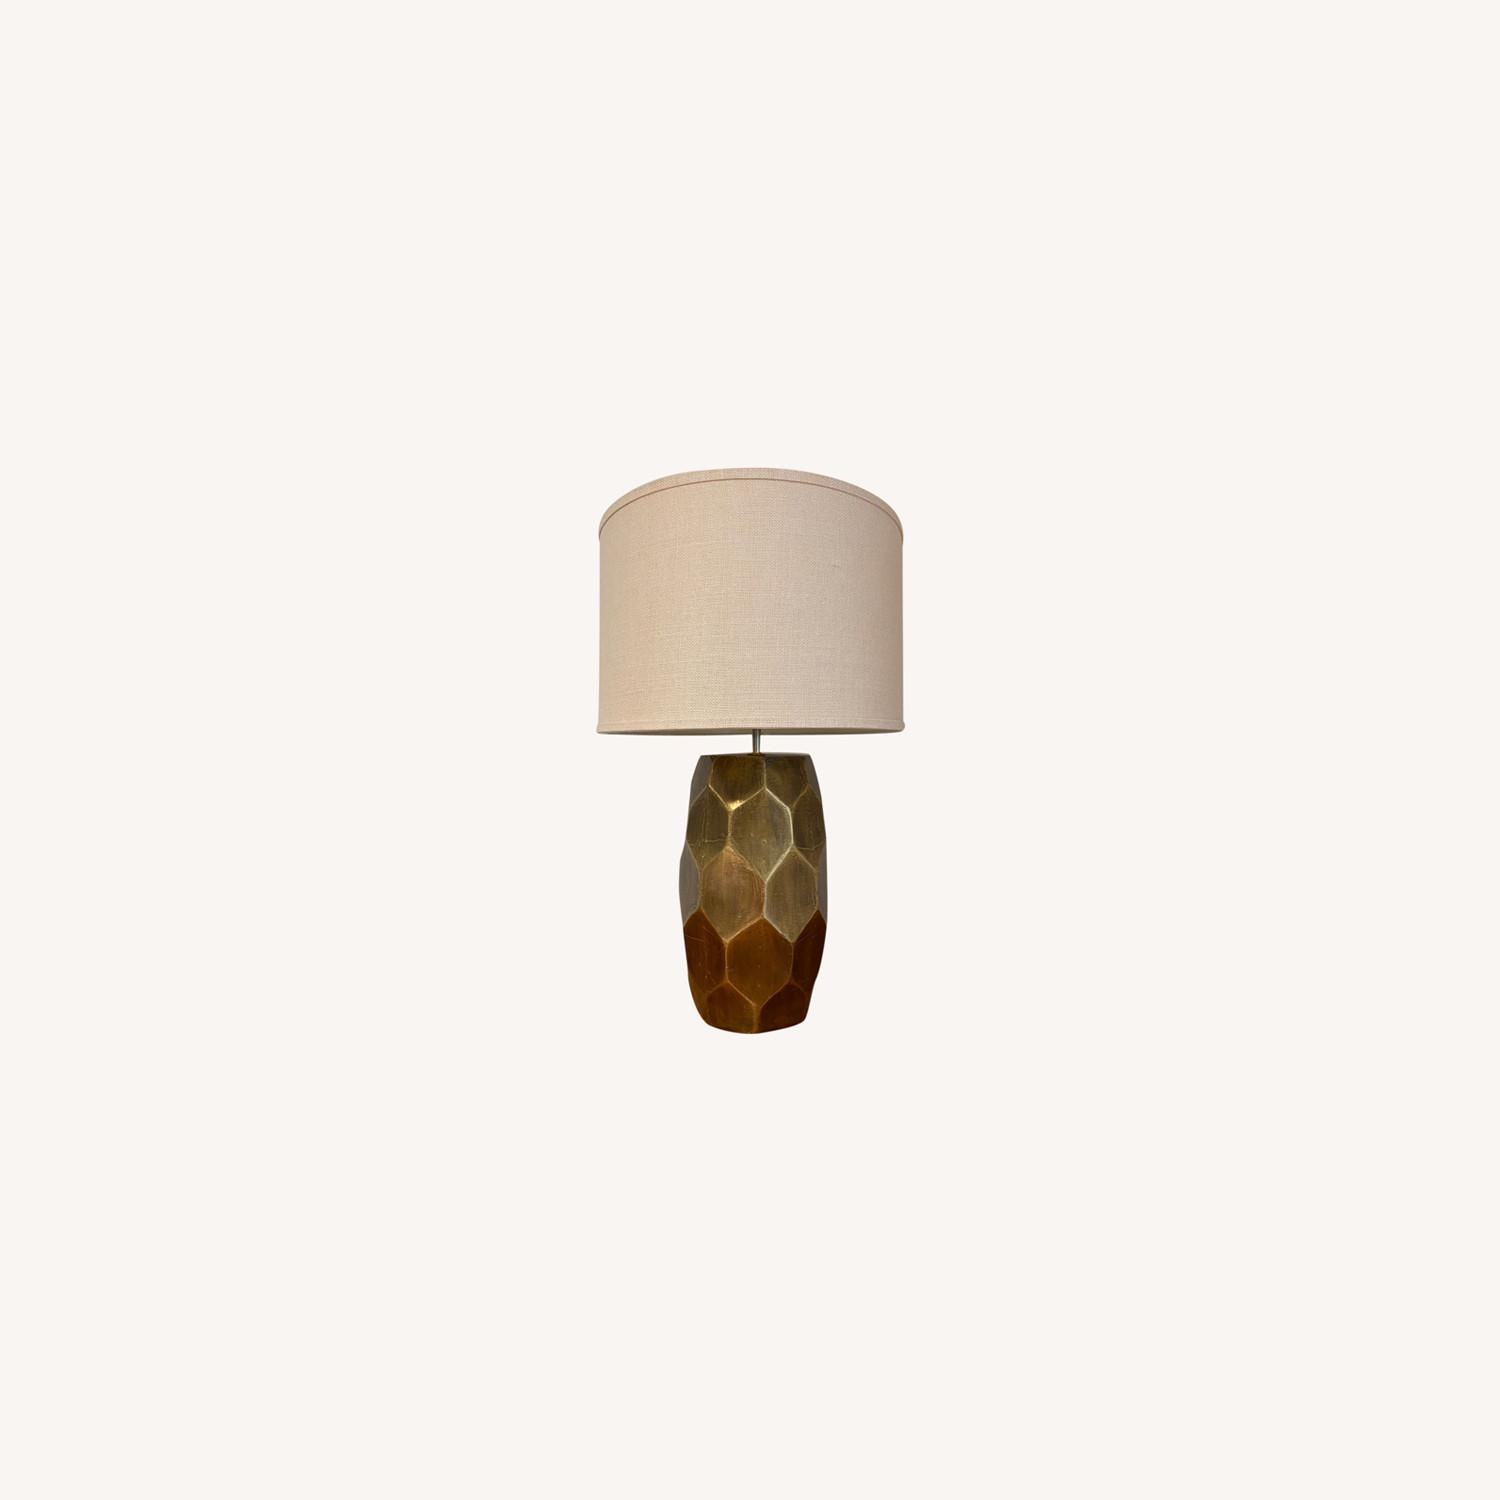 Pottery Barn Hammered Golden Honeycomb Lamps (2) - image-0